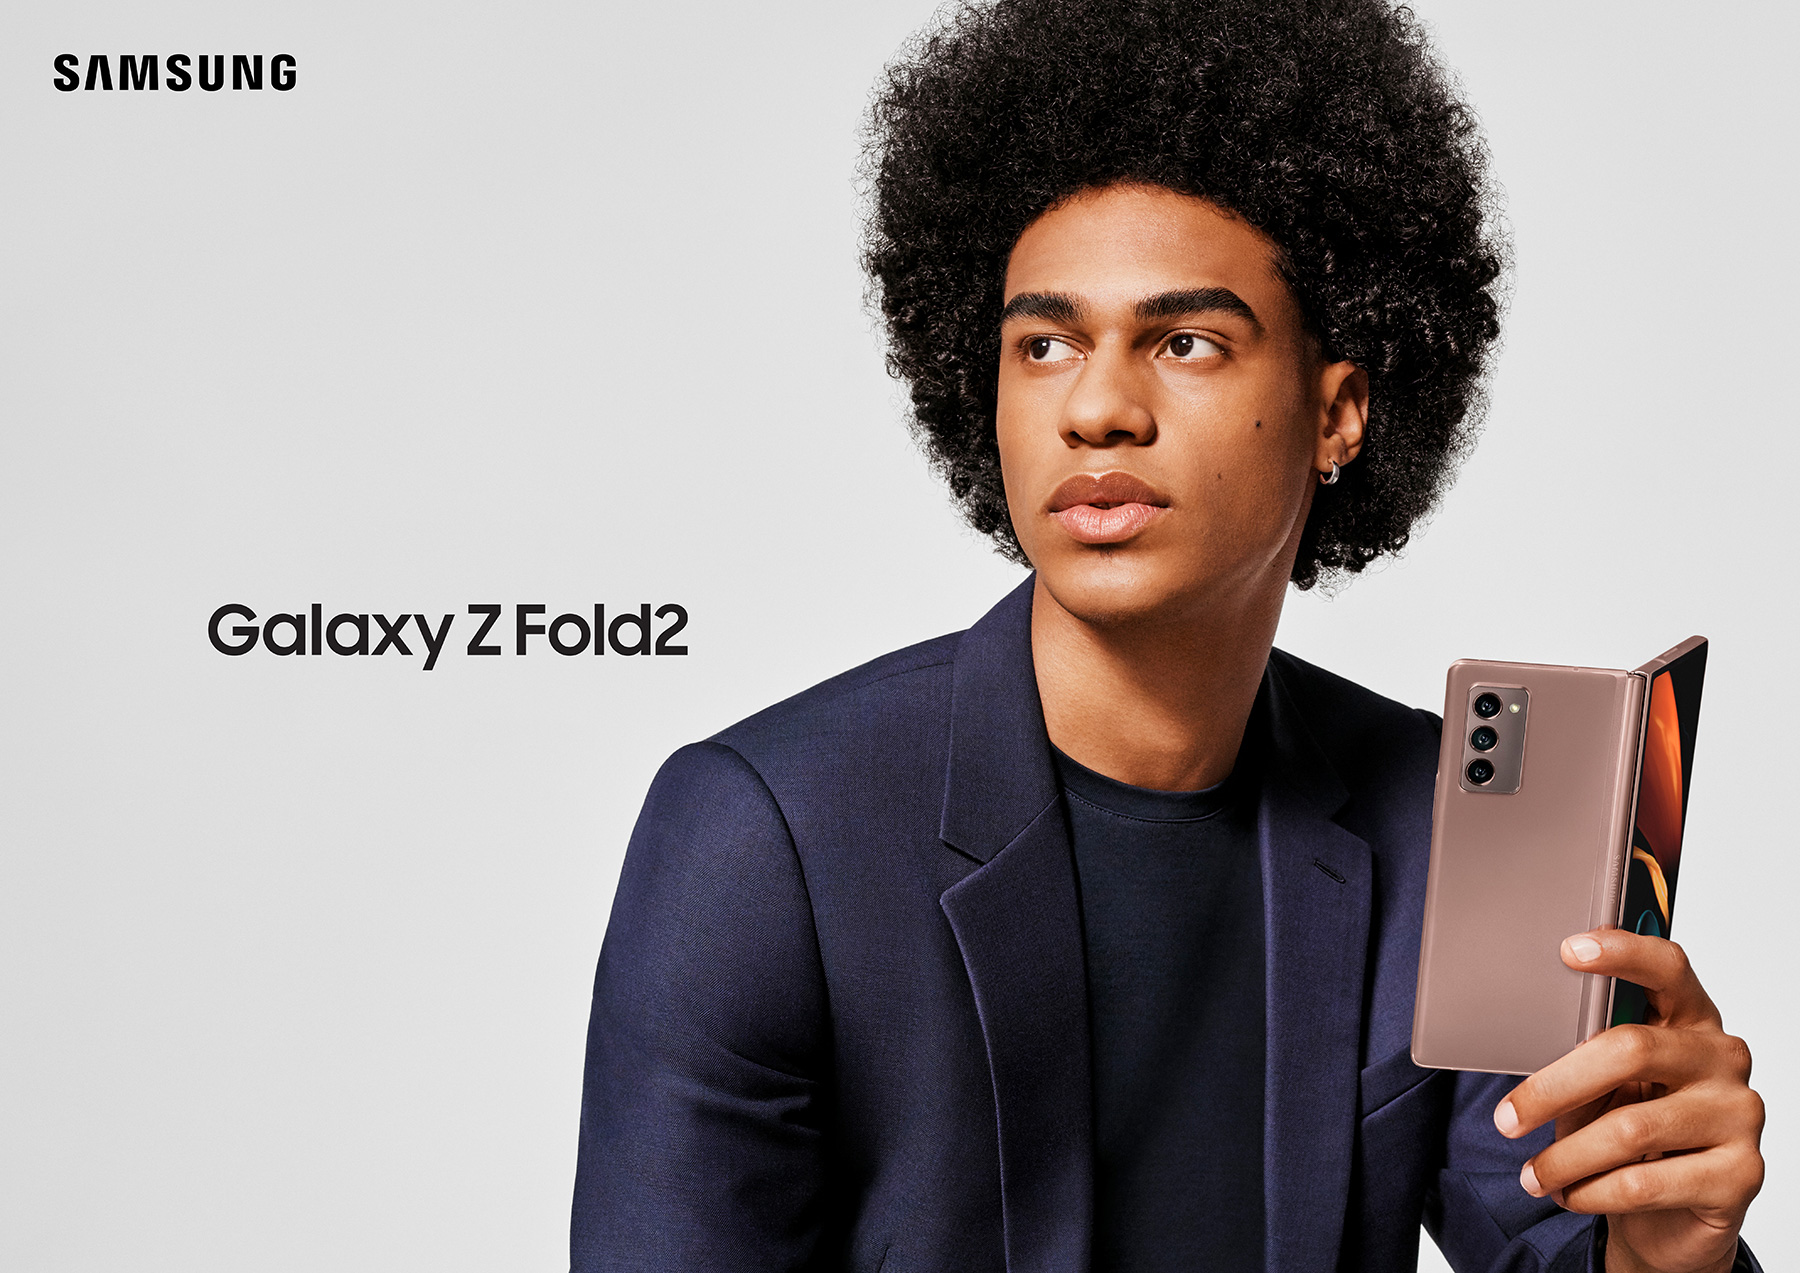 The Galaxy Z Fold2 smartphone breaks all the rules - Mail and Guardian